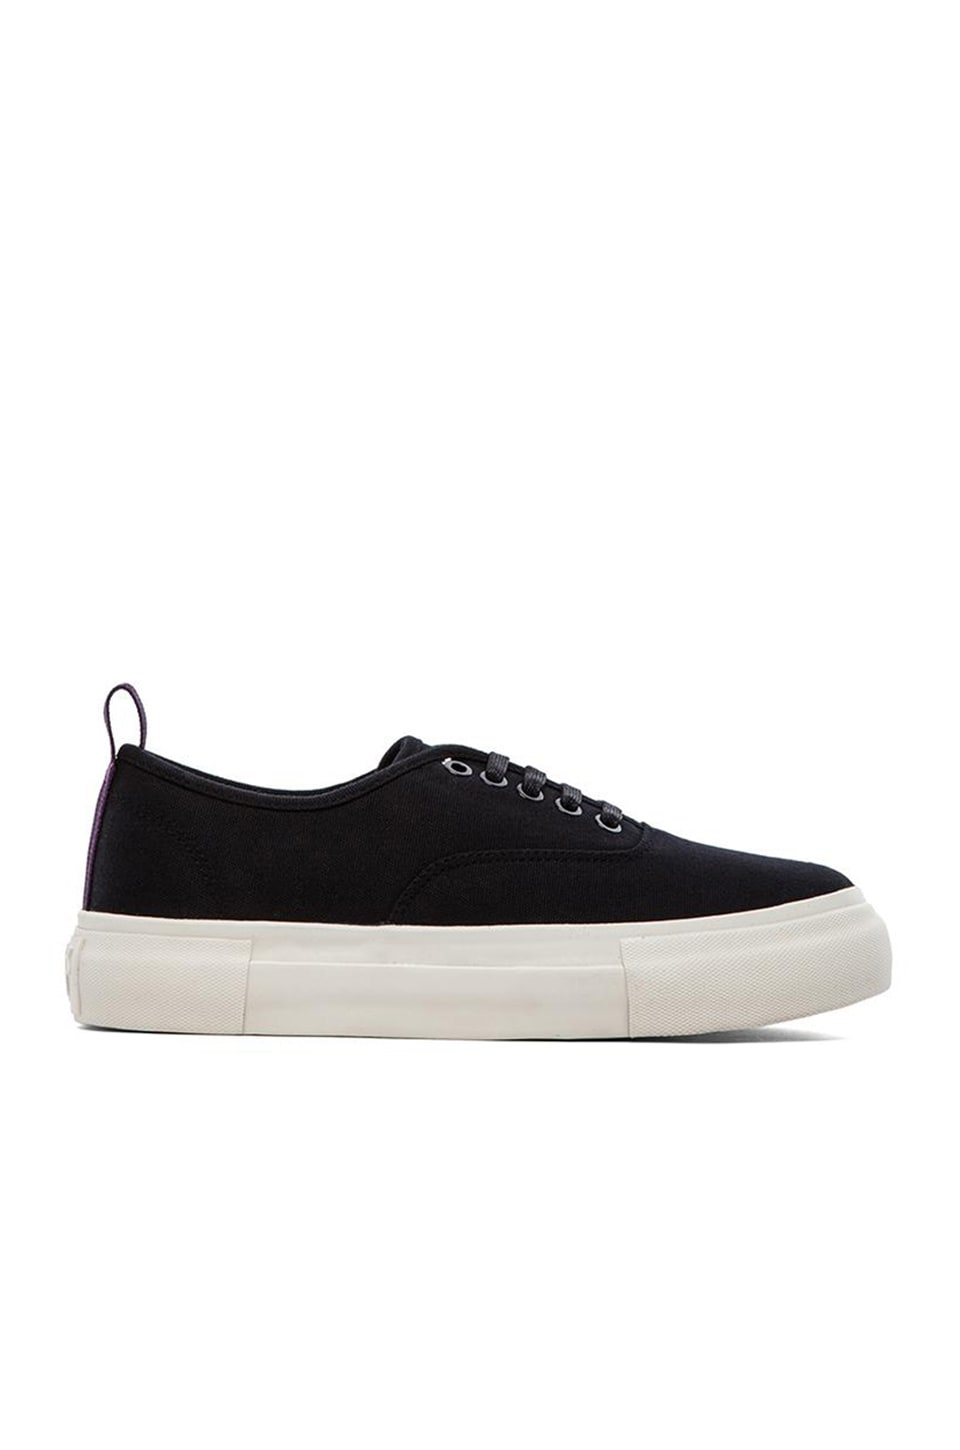 Eytys Mother Canvas in Black